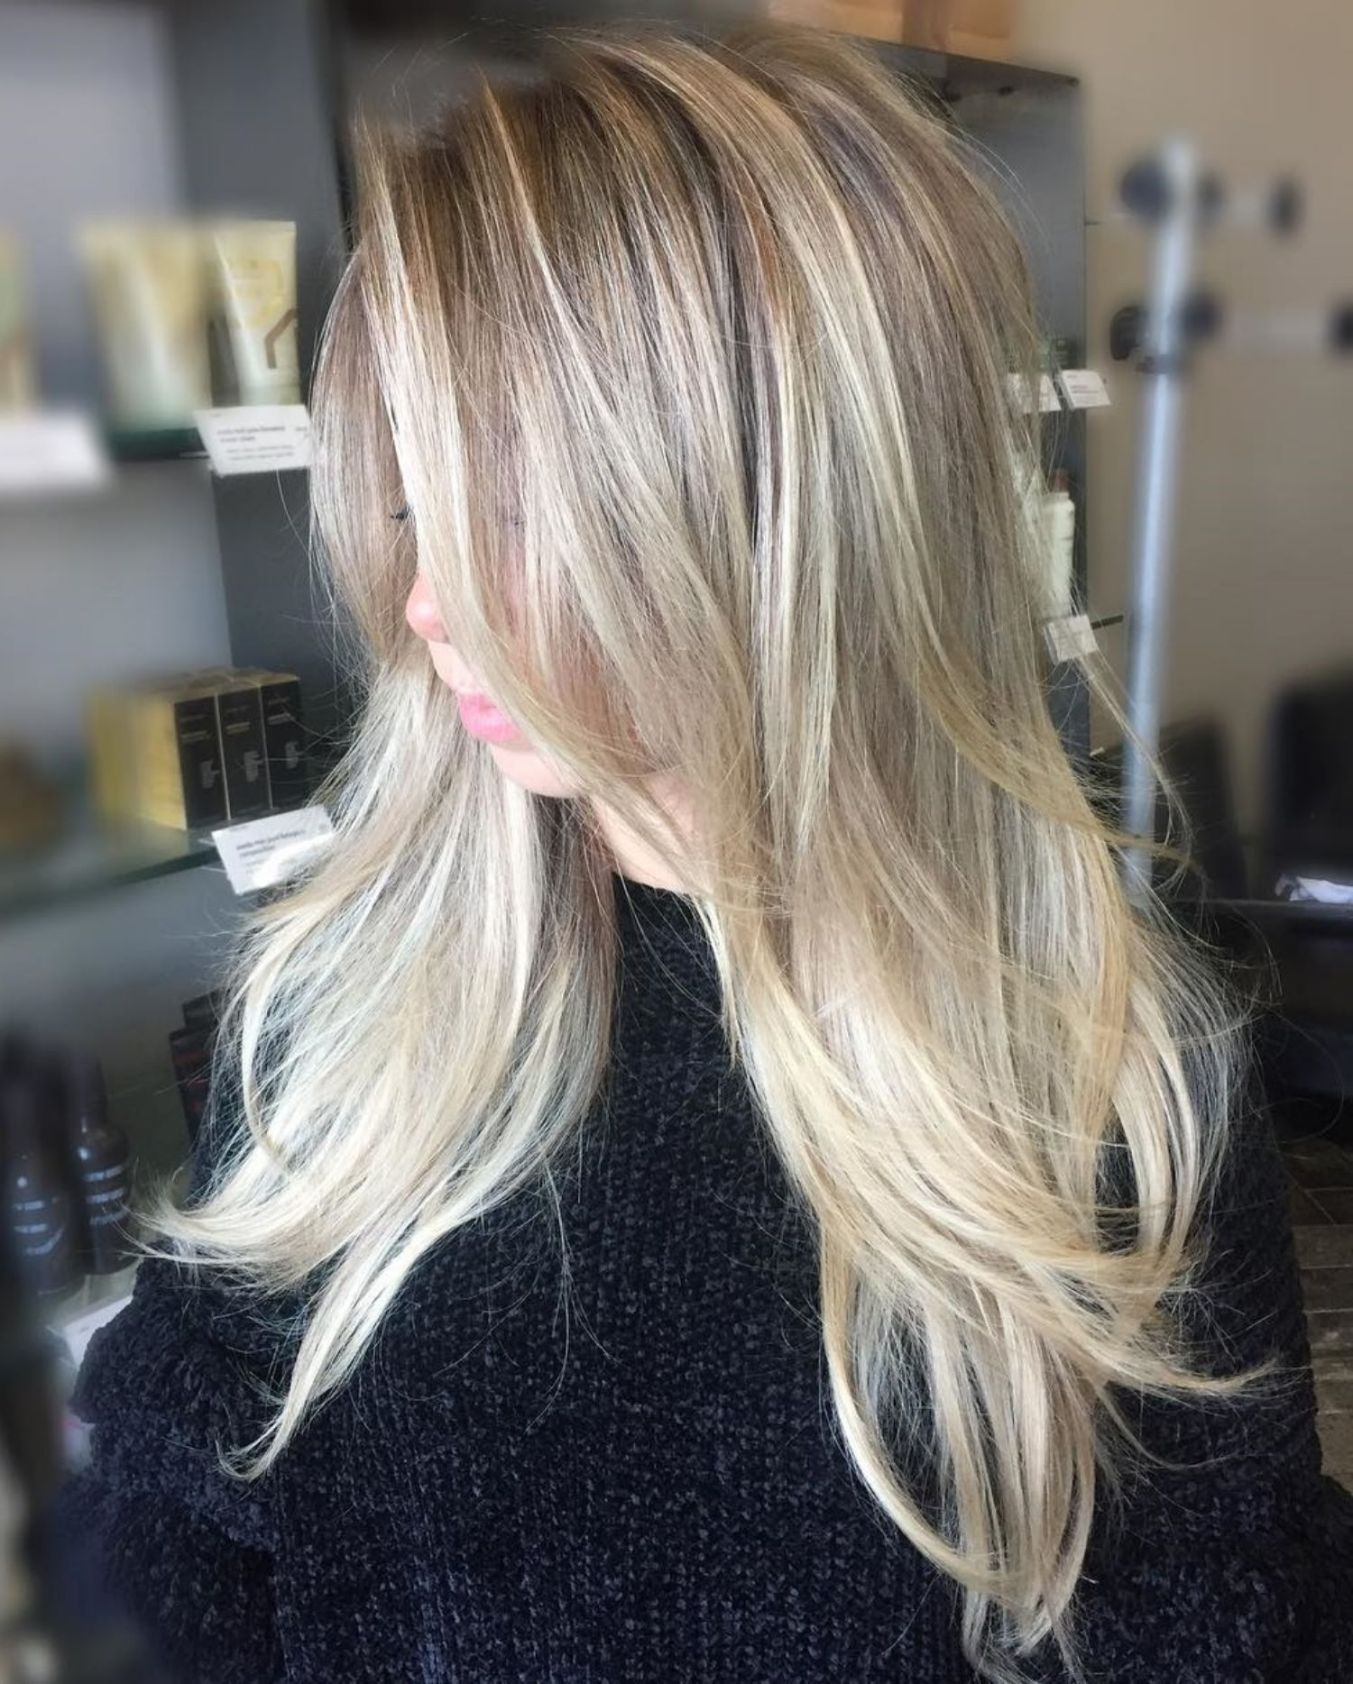 40 Picture Perfect Hairstyles For Long Thin Hair In 2020 Long Thin Hair Hairstyles For Thin Hair Fine Hair